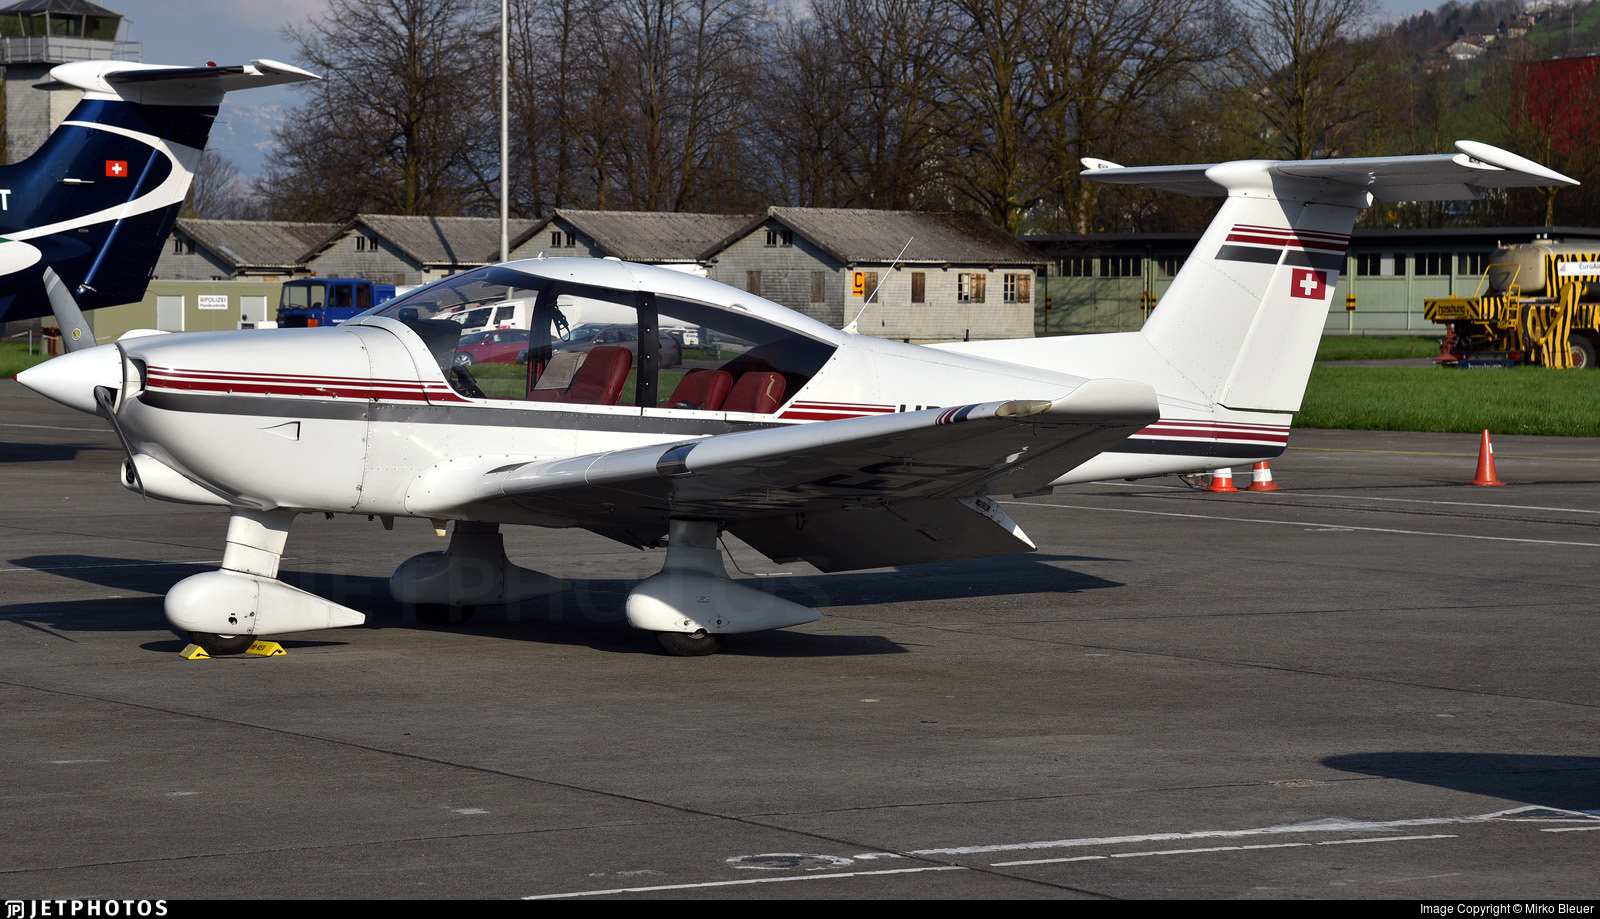 HB-KEQ - Robin R3000/160 - Private